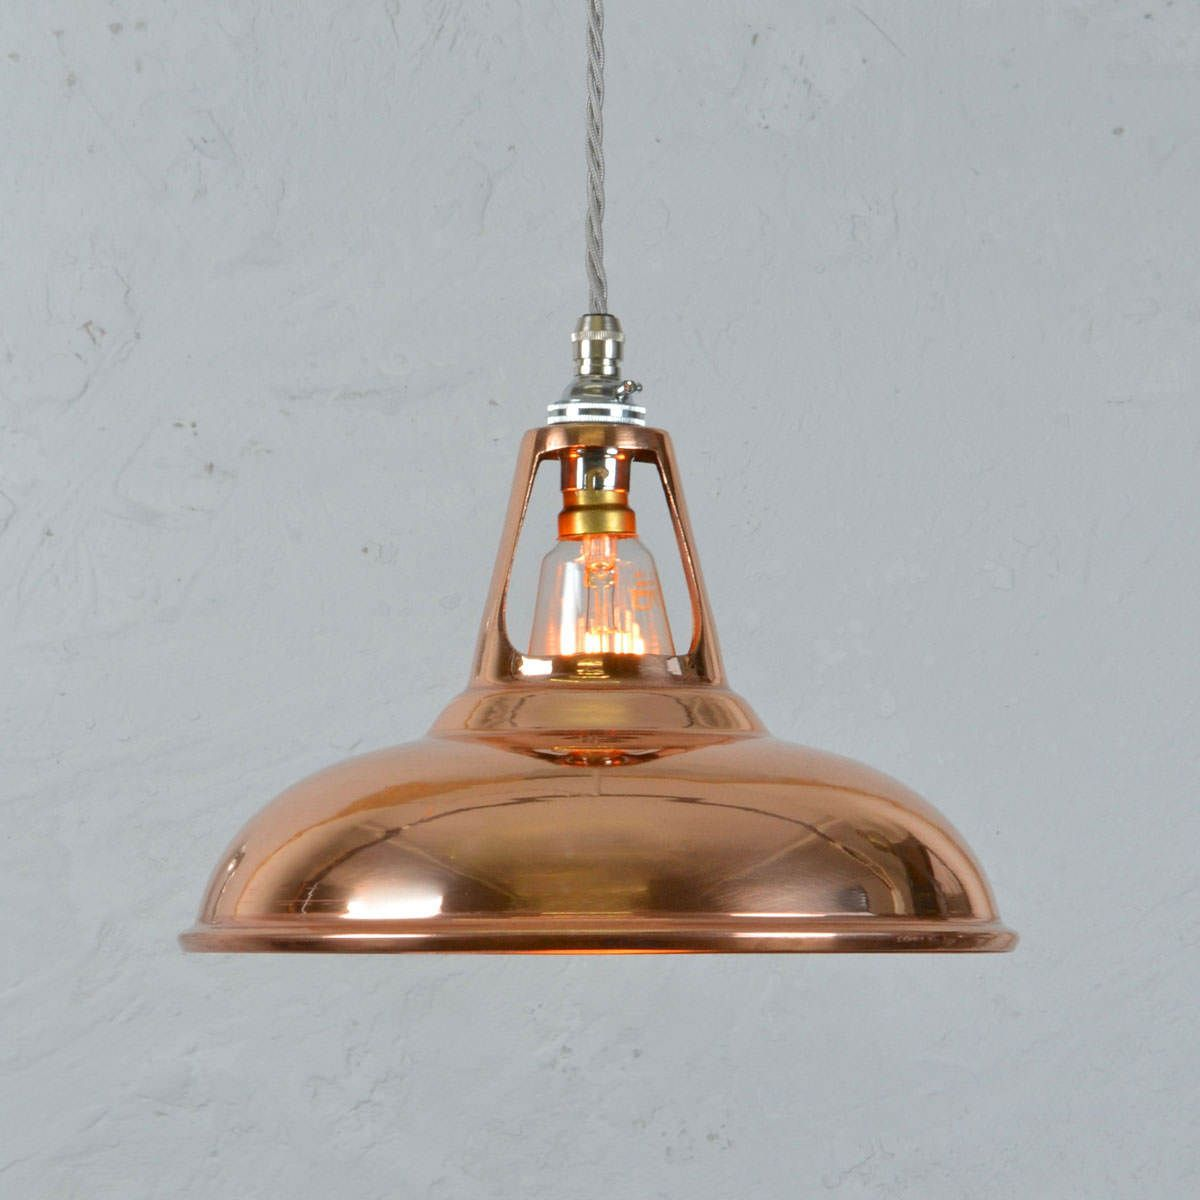 17 Best images about Lighting on Pinterest | Copper, Sputnik chandelier and  Edison bulbs